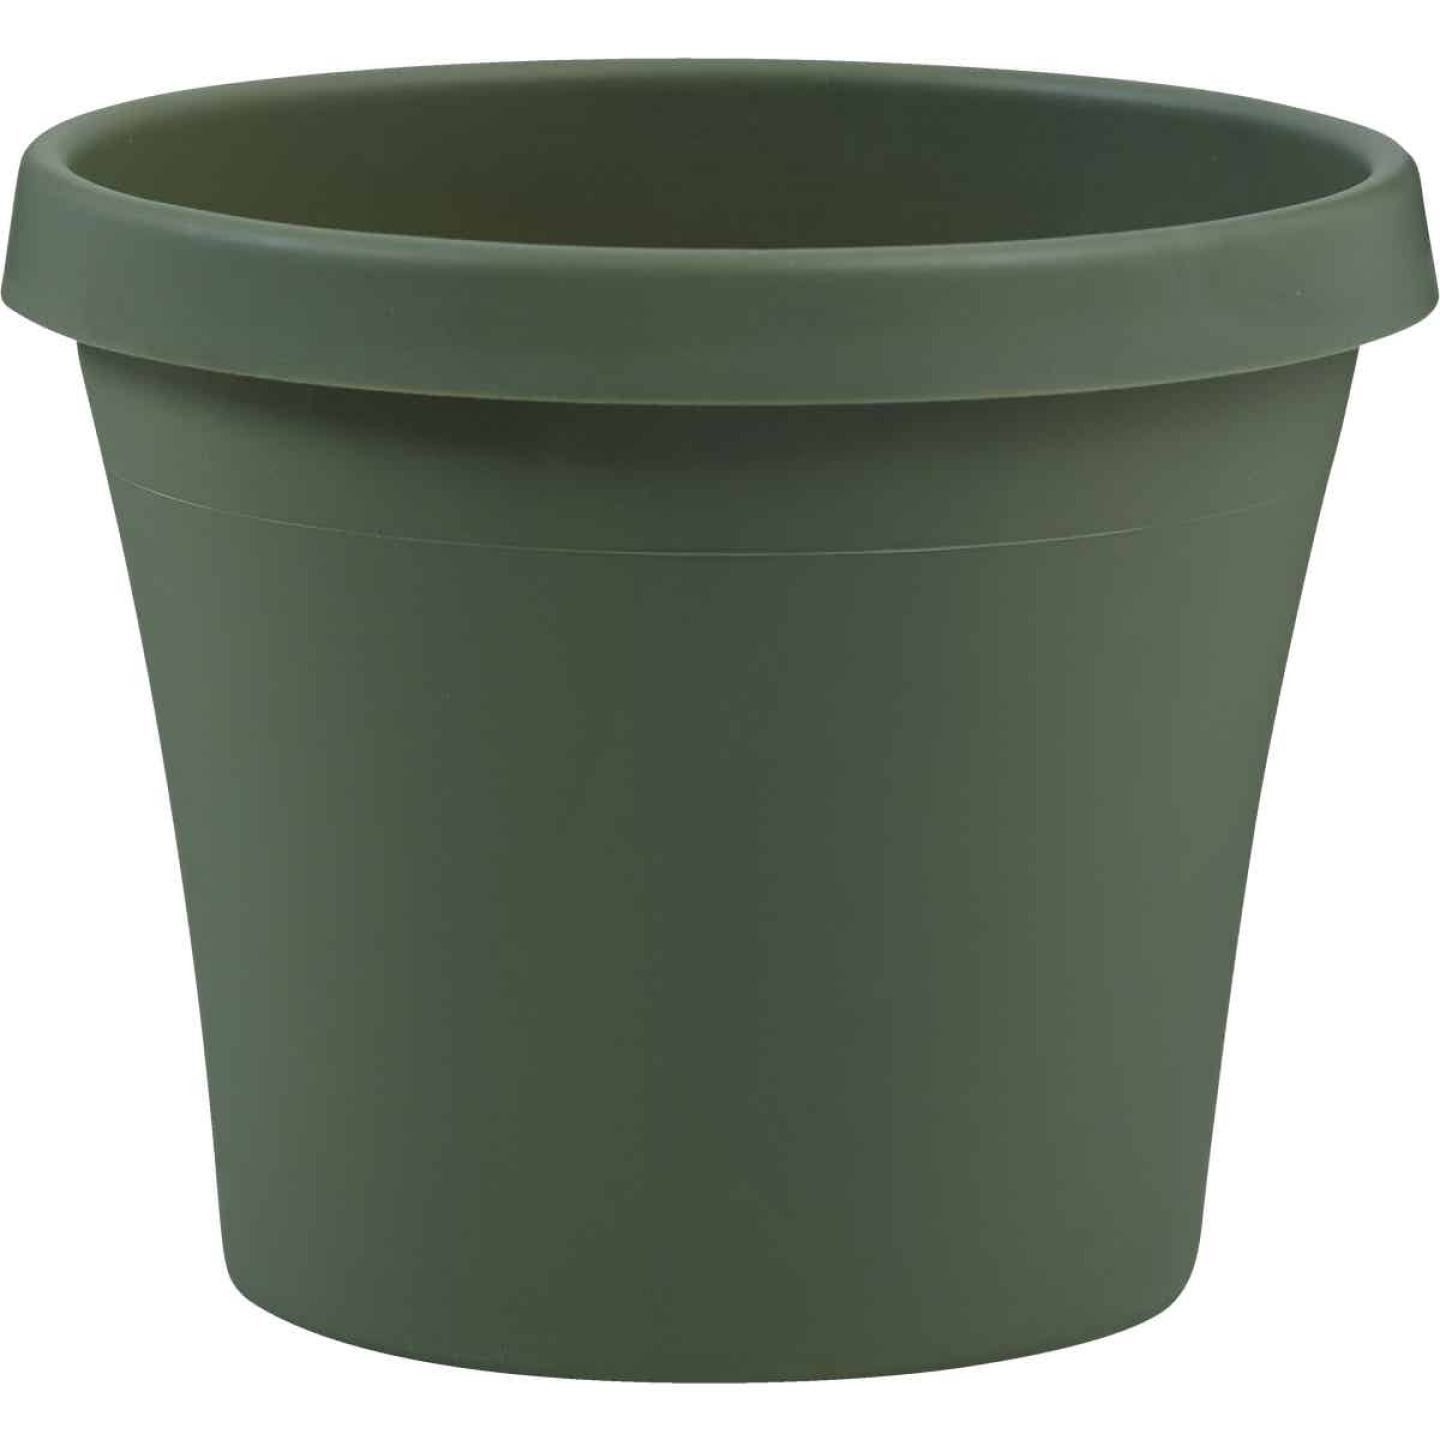 Bloem Terra Living Green 17 In. H. x 20 In. Dia. Polypropylene Planter Image 1